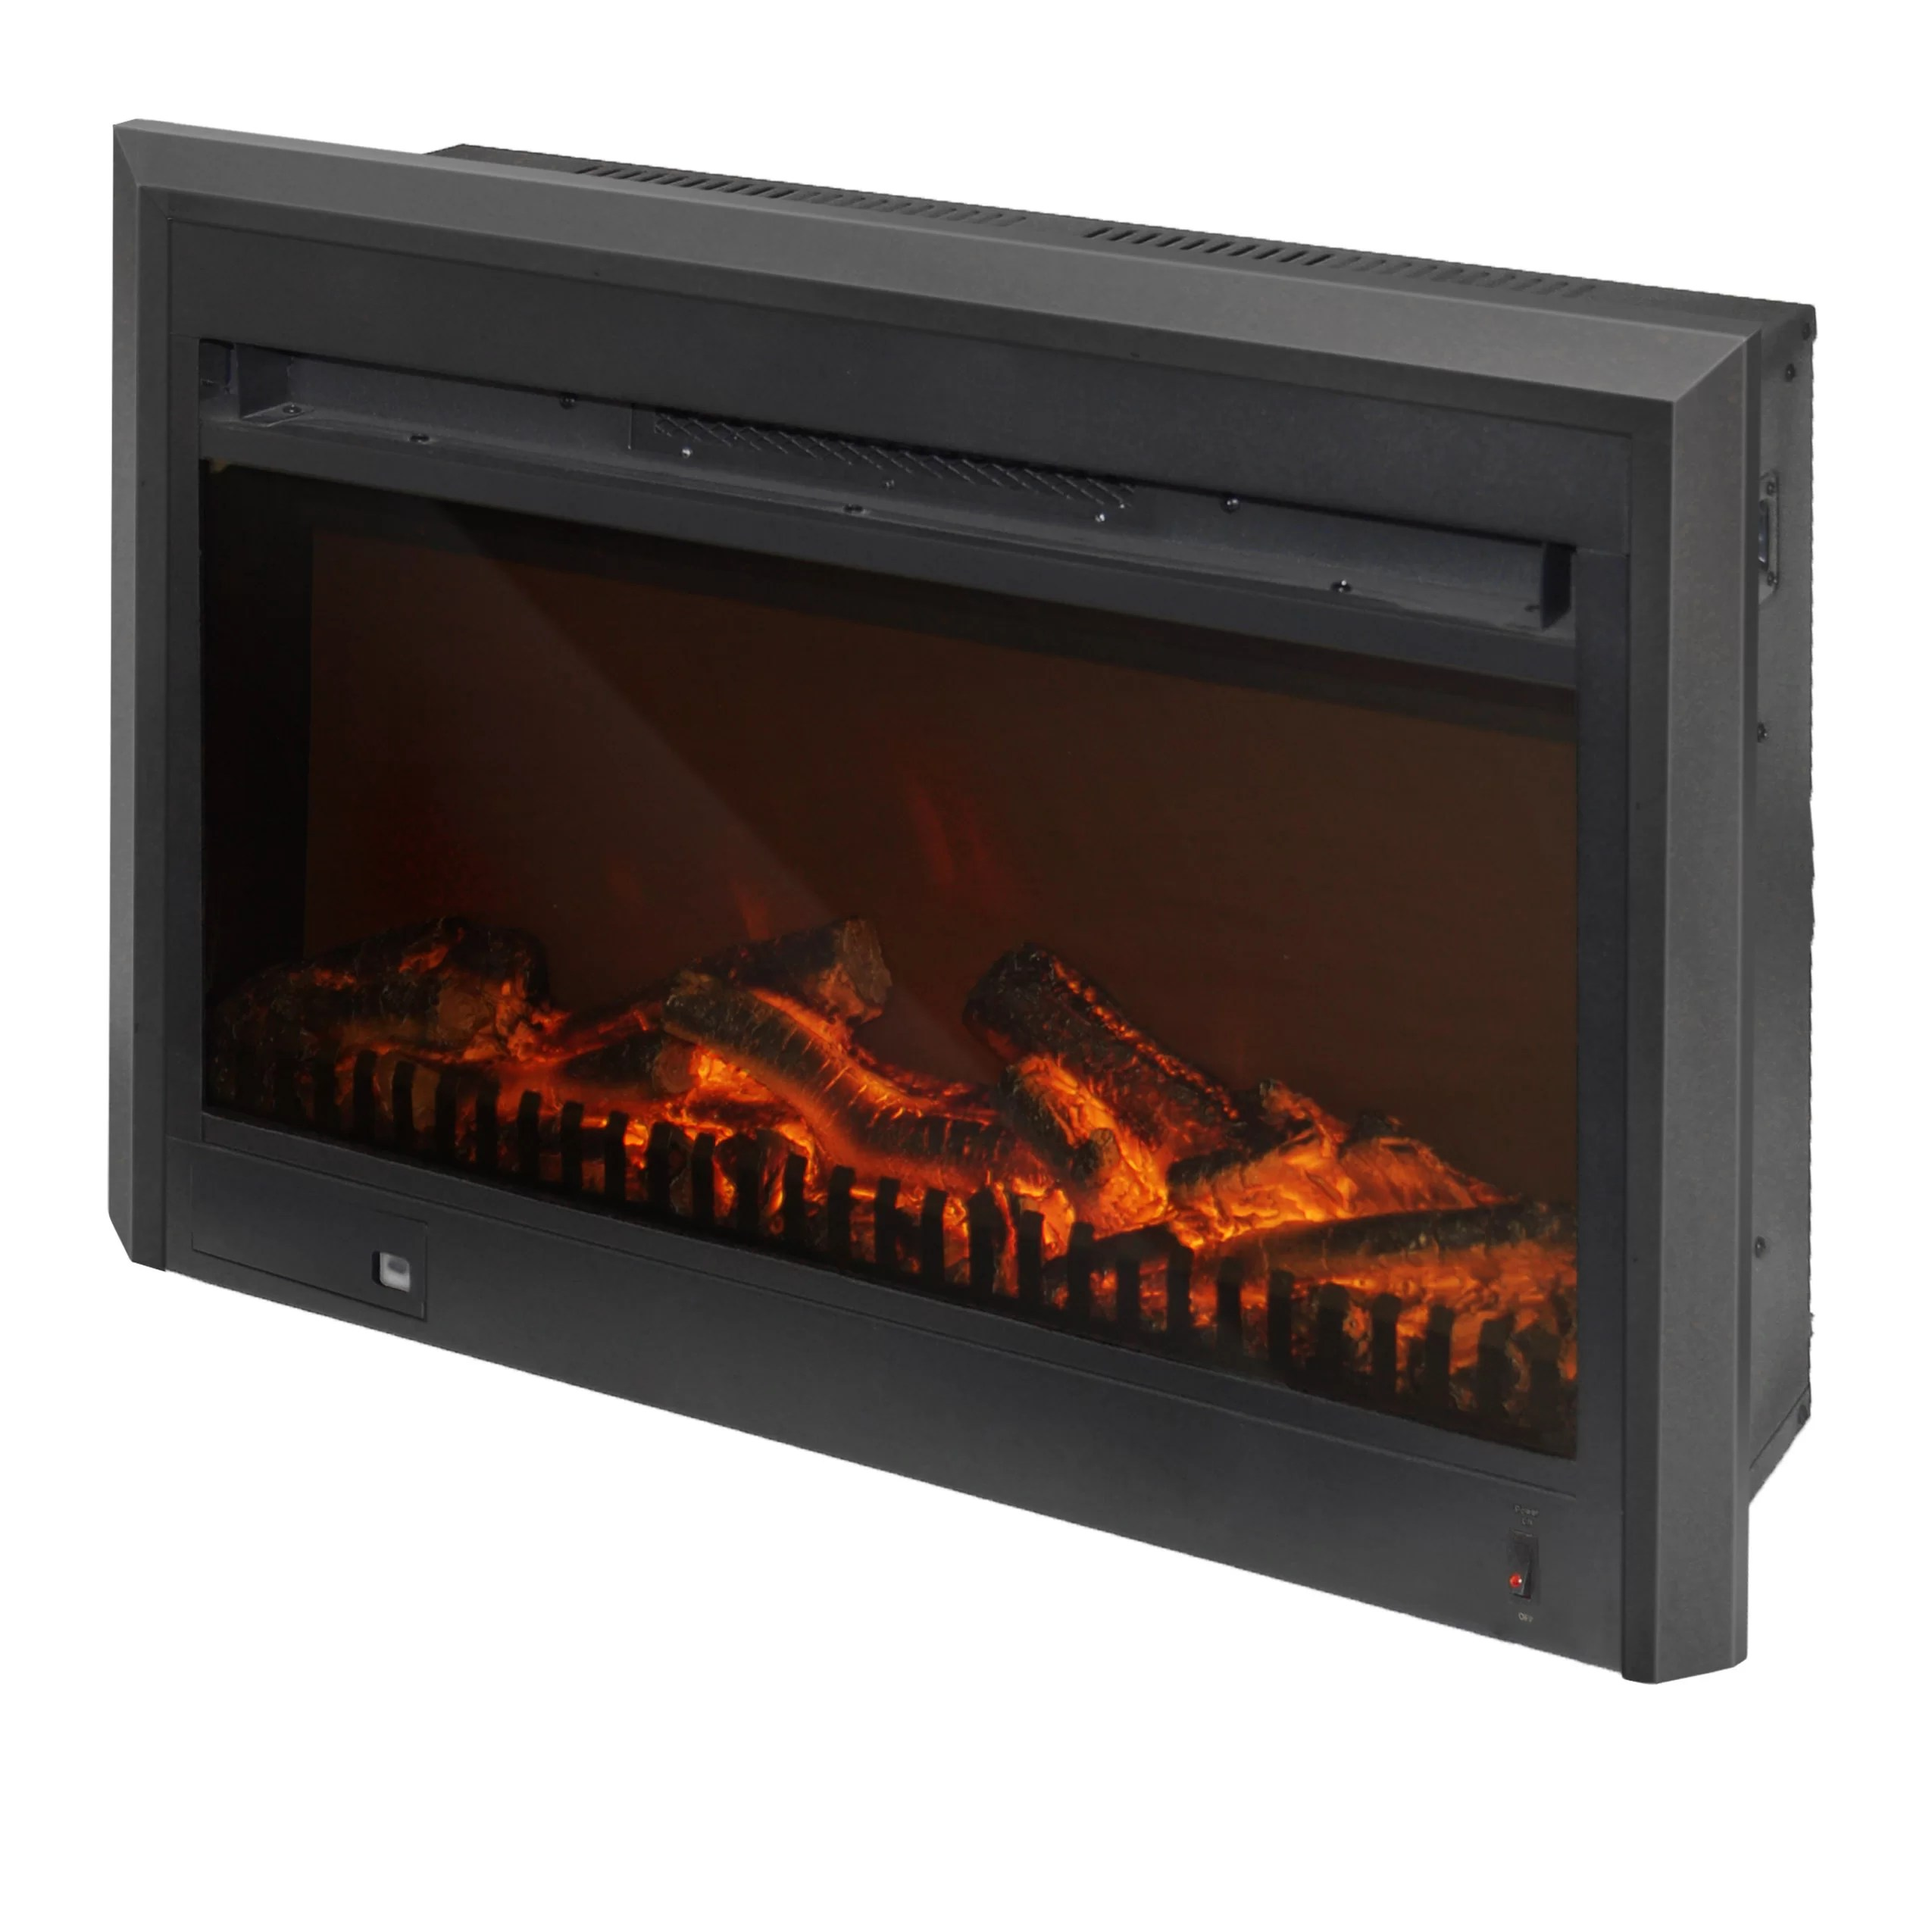 Electric Fireplace Reviews Corliving Electric Fireplace Insert & Reviews | Wayfair